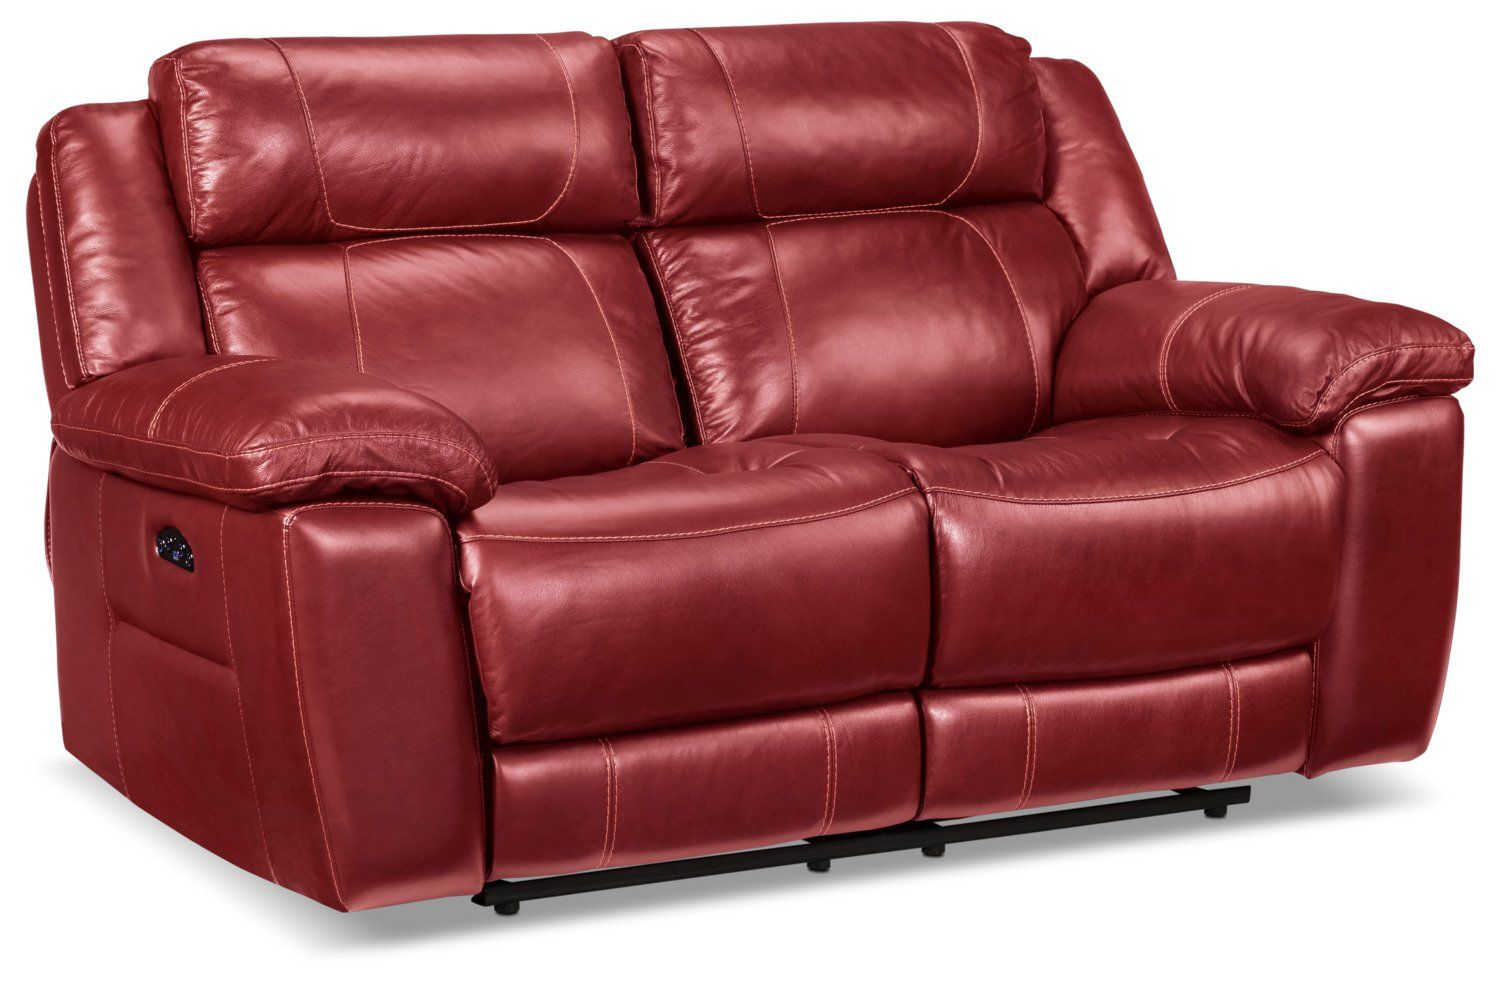 Solenn Power Reclining Sofa And Reclining Loveseat Rouge Power Reclining Loveseat Power Reclining Sofa Power Recliners